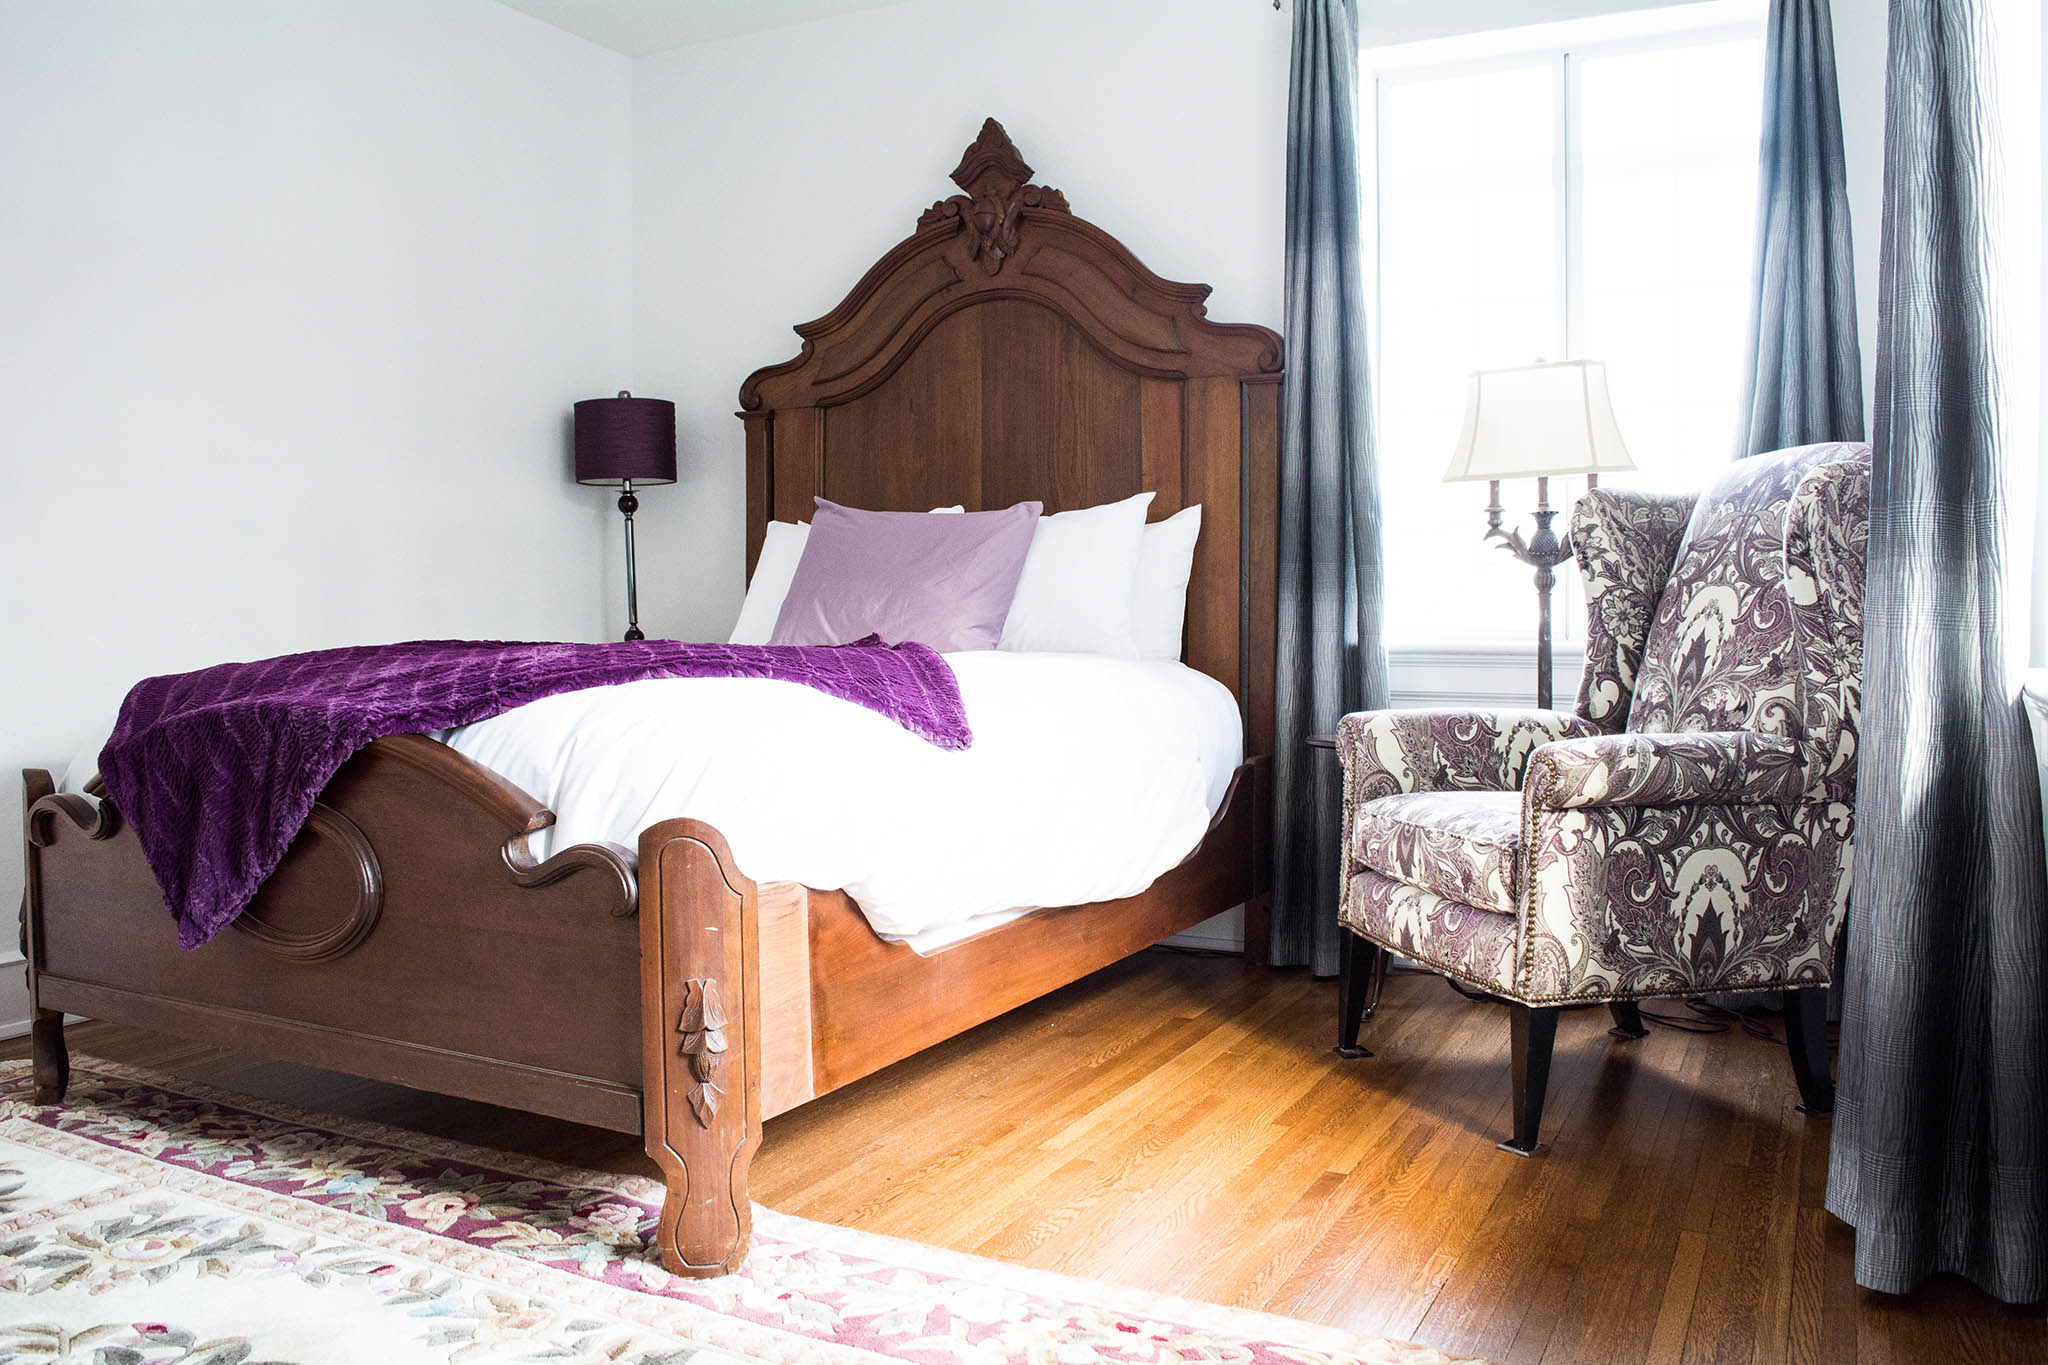 Wilson Suite bedroom. Large bed with white comforter and purple throw blanket. Hardwood floors and a chair in the corner of the room.